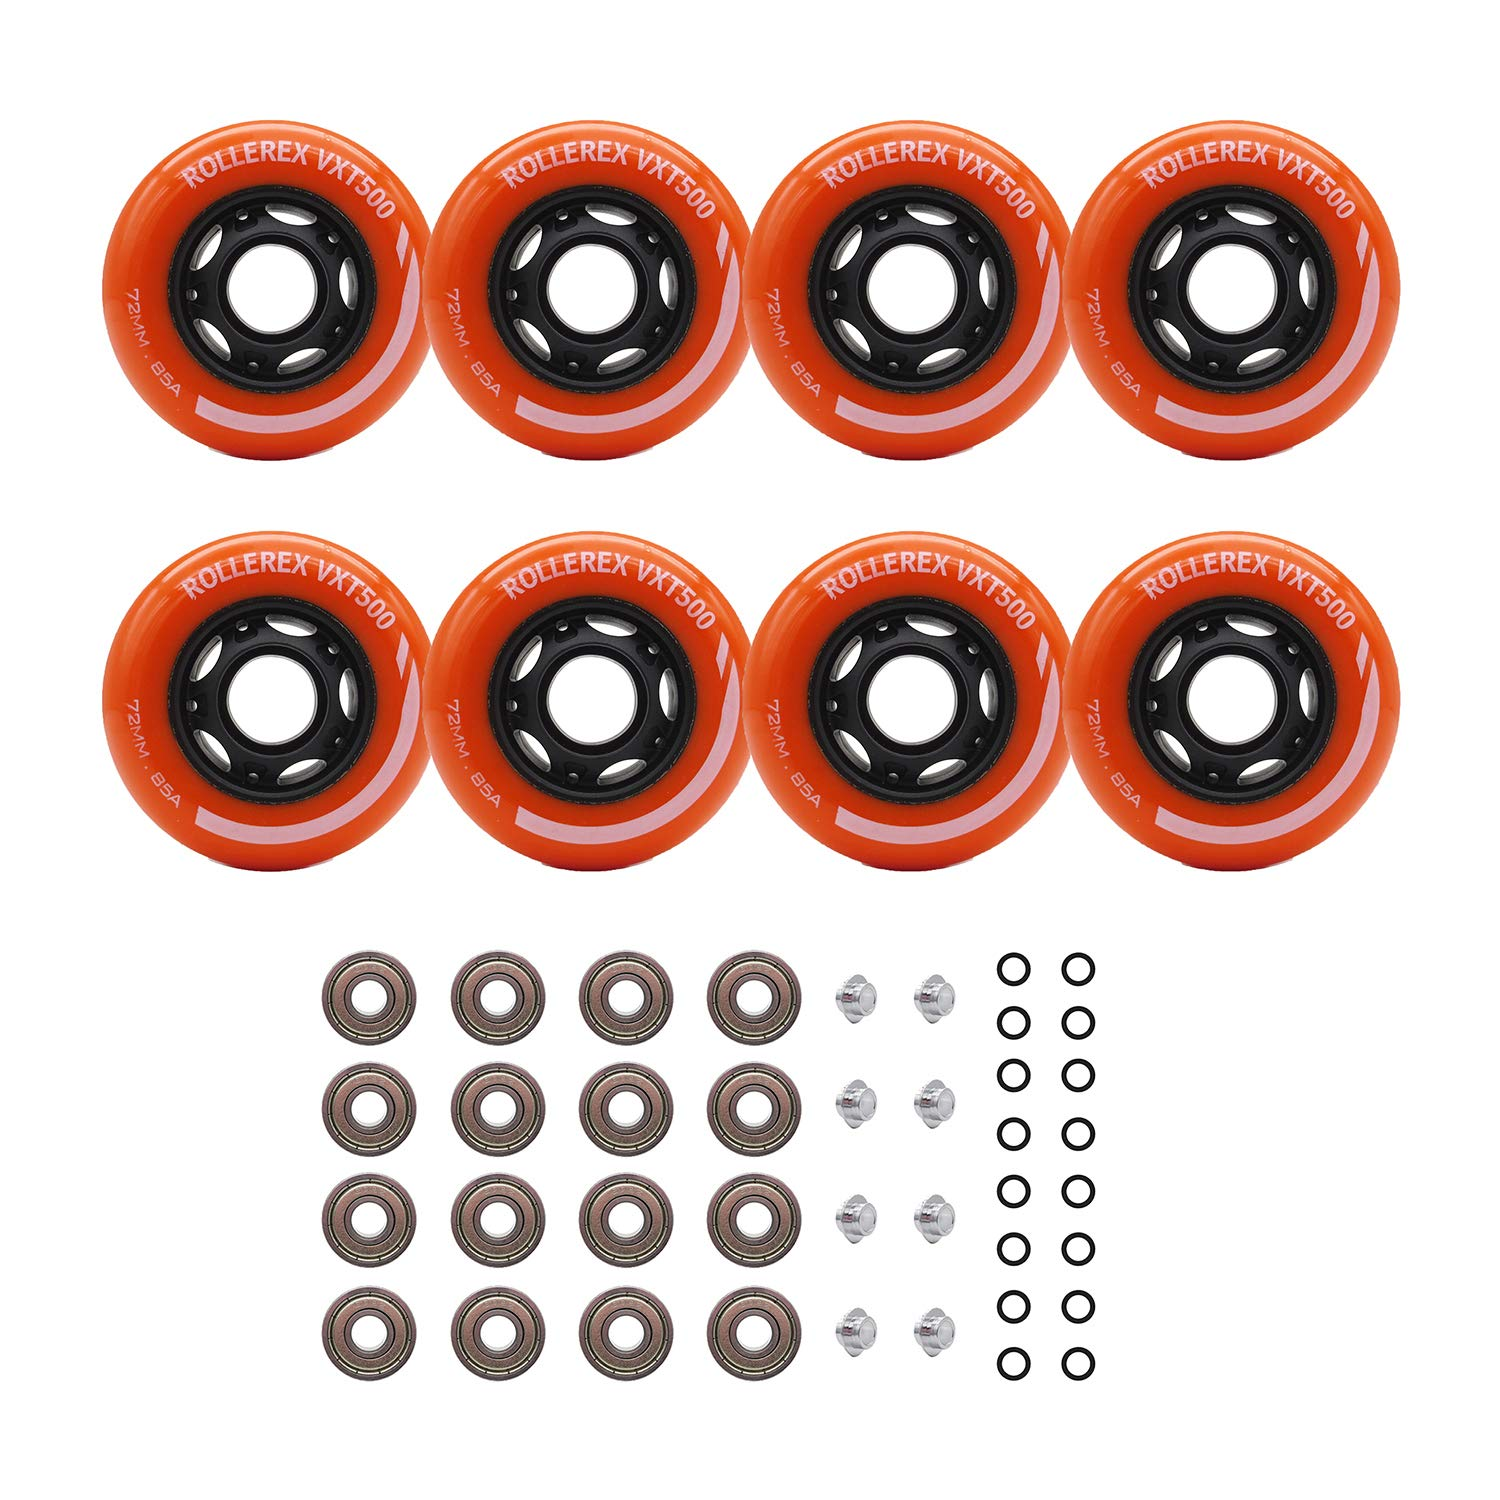 Rollerex Inline Skate/Rollerblade Wheels VXT500 80mm (8-Pack or 2-Pack or 2 Wheels w/Bearings, Spacers and Washers) (72mm Sunrise Orange (8 Wheels w/Bearings, spacers and washers))